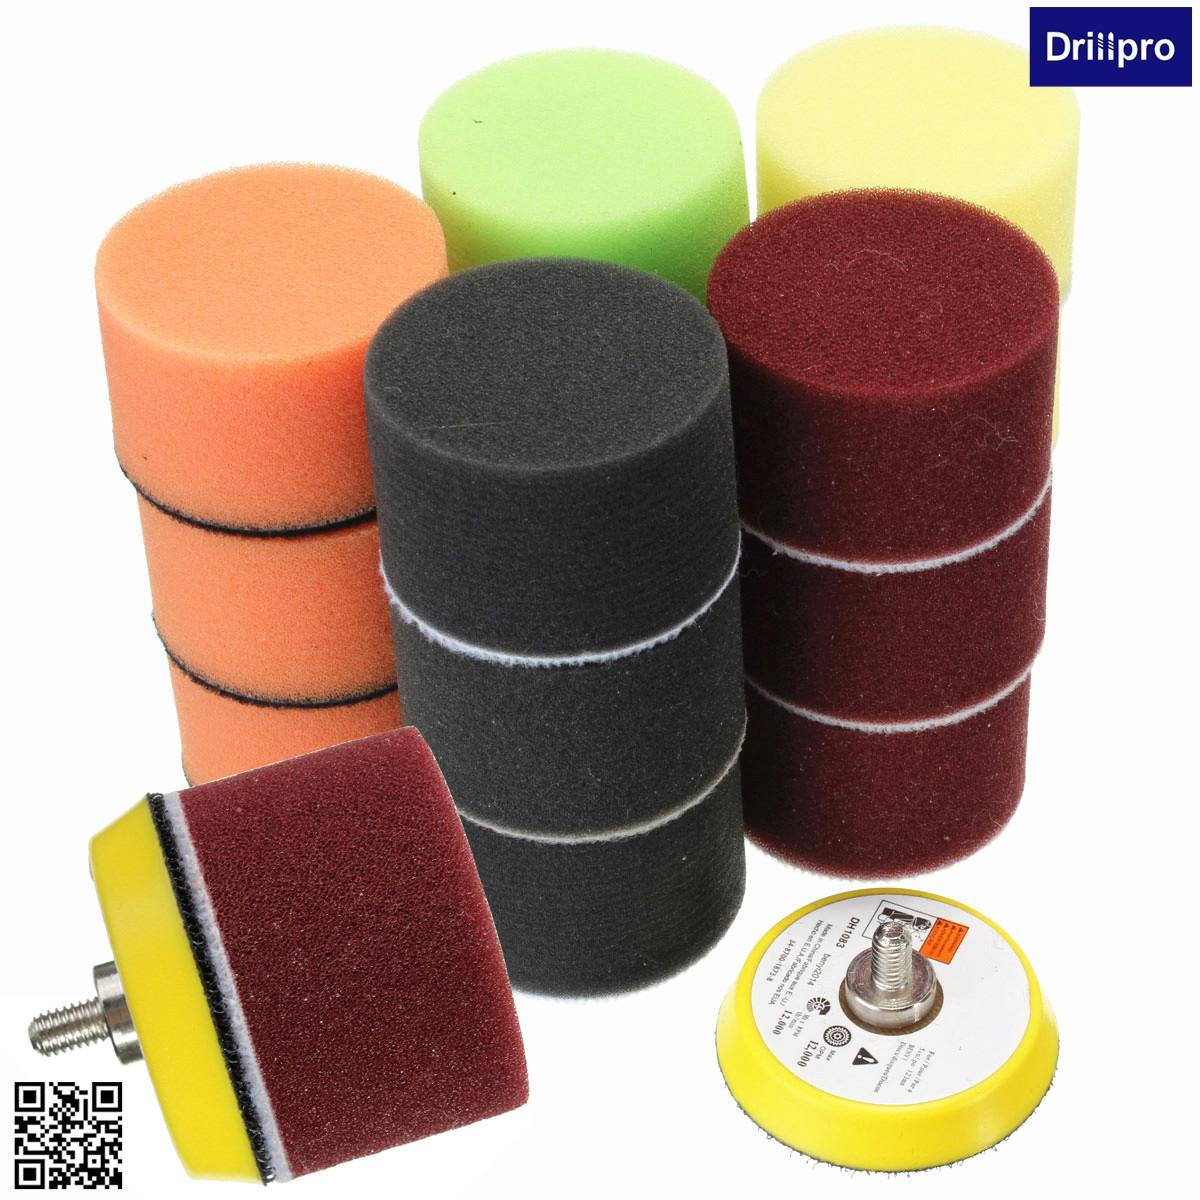 Drillpro 16pcs 2 Inch Sponge Flat Polishing Pad For Car Polisher